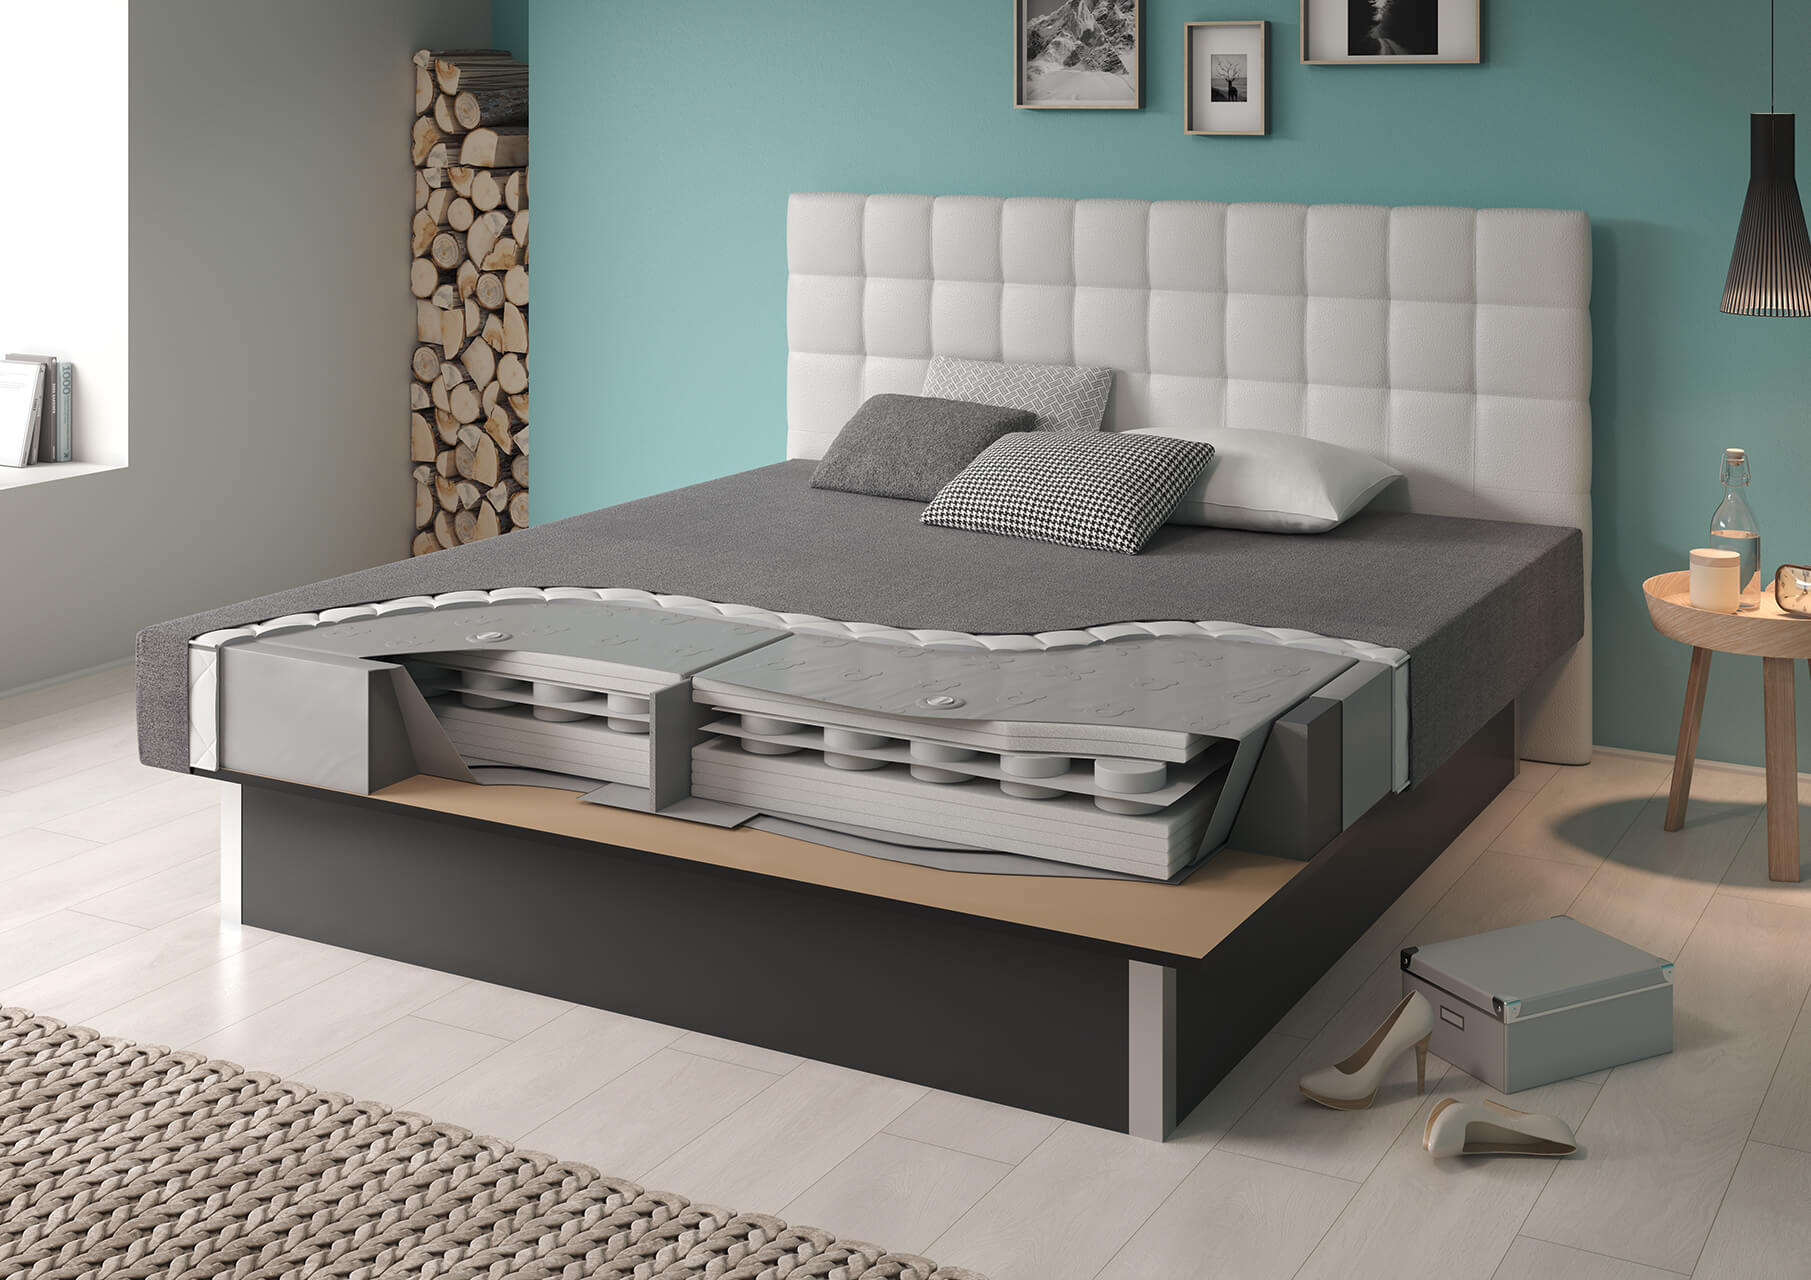 wasserbett platin dual das beste das stabilste das sicherste wasserbett suma wasserbetten. Black Bedroom Furniture Sets. Home Design Ideas